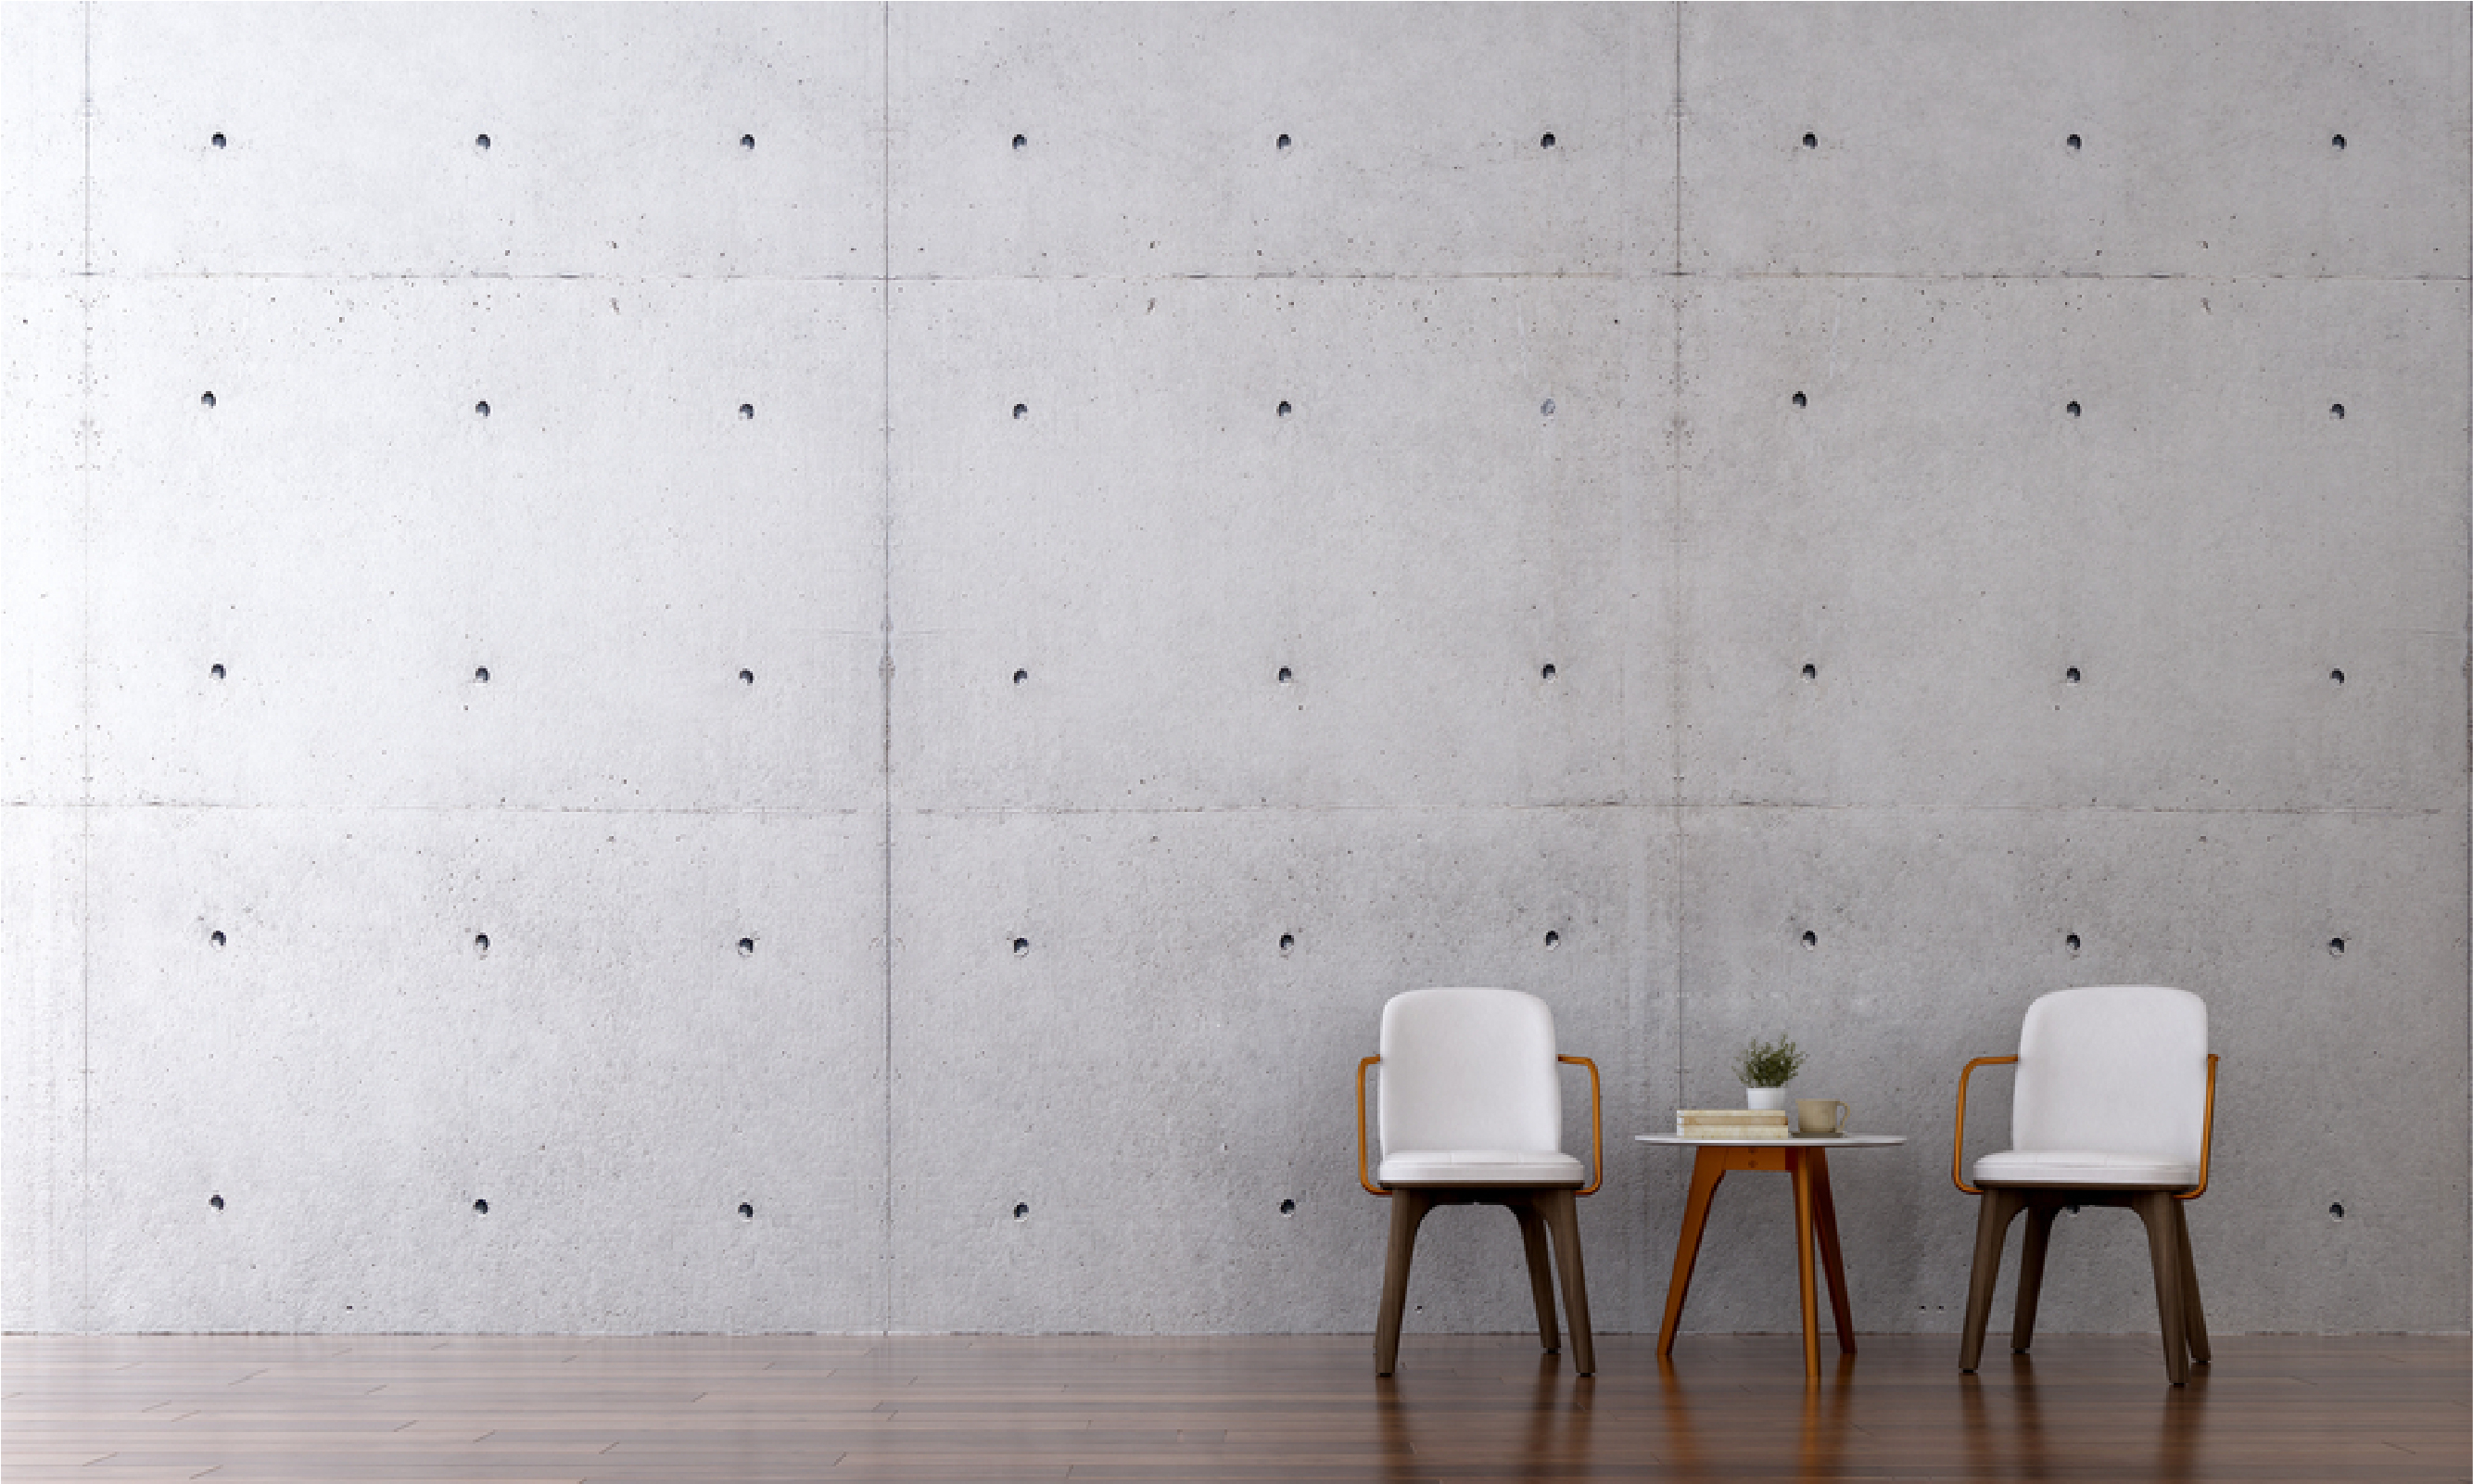 interior-concretewall-640px